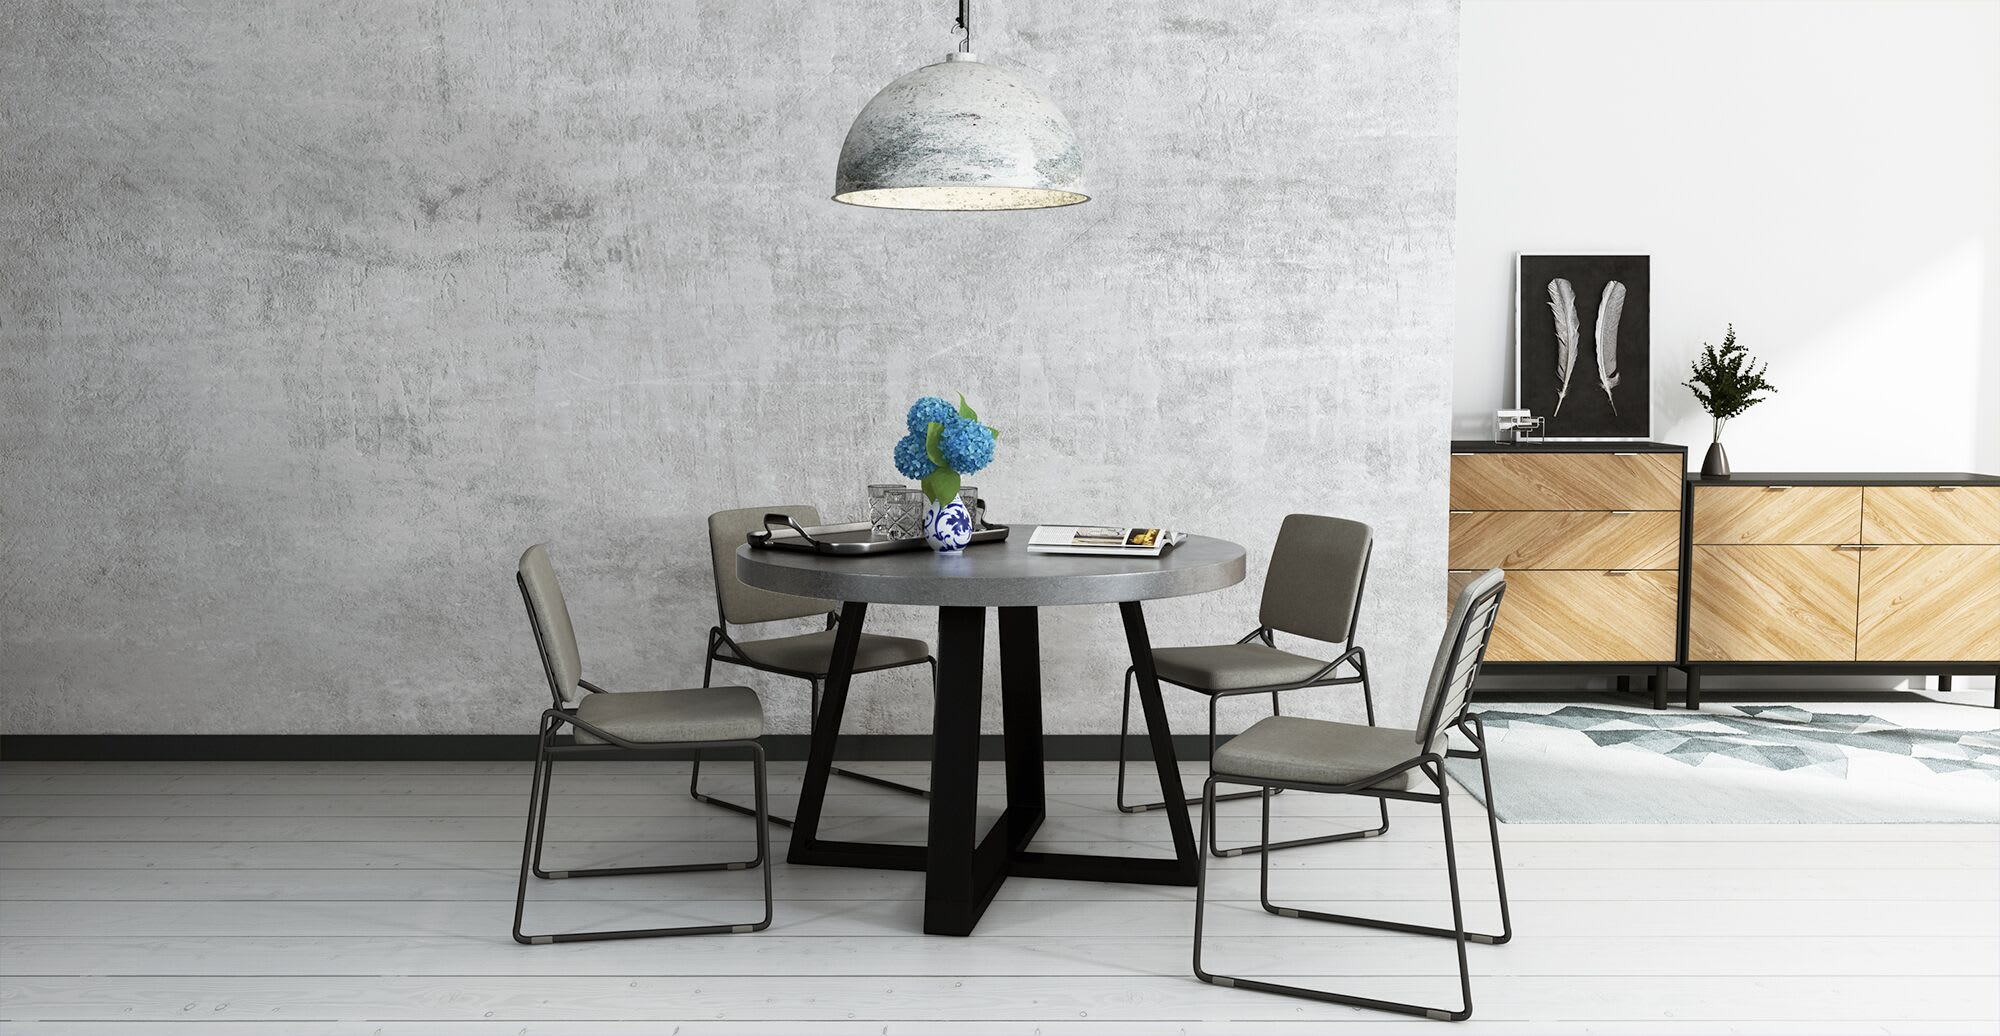 multiple pieces of designer furniture in a dining room